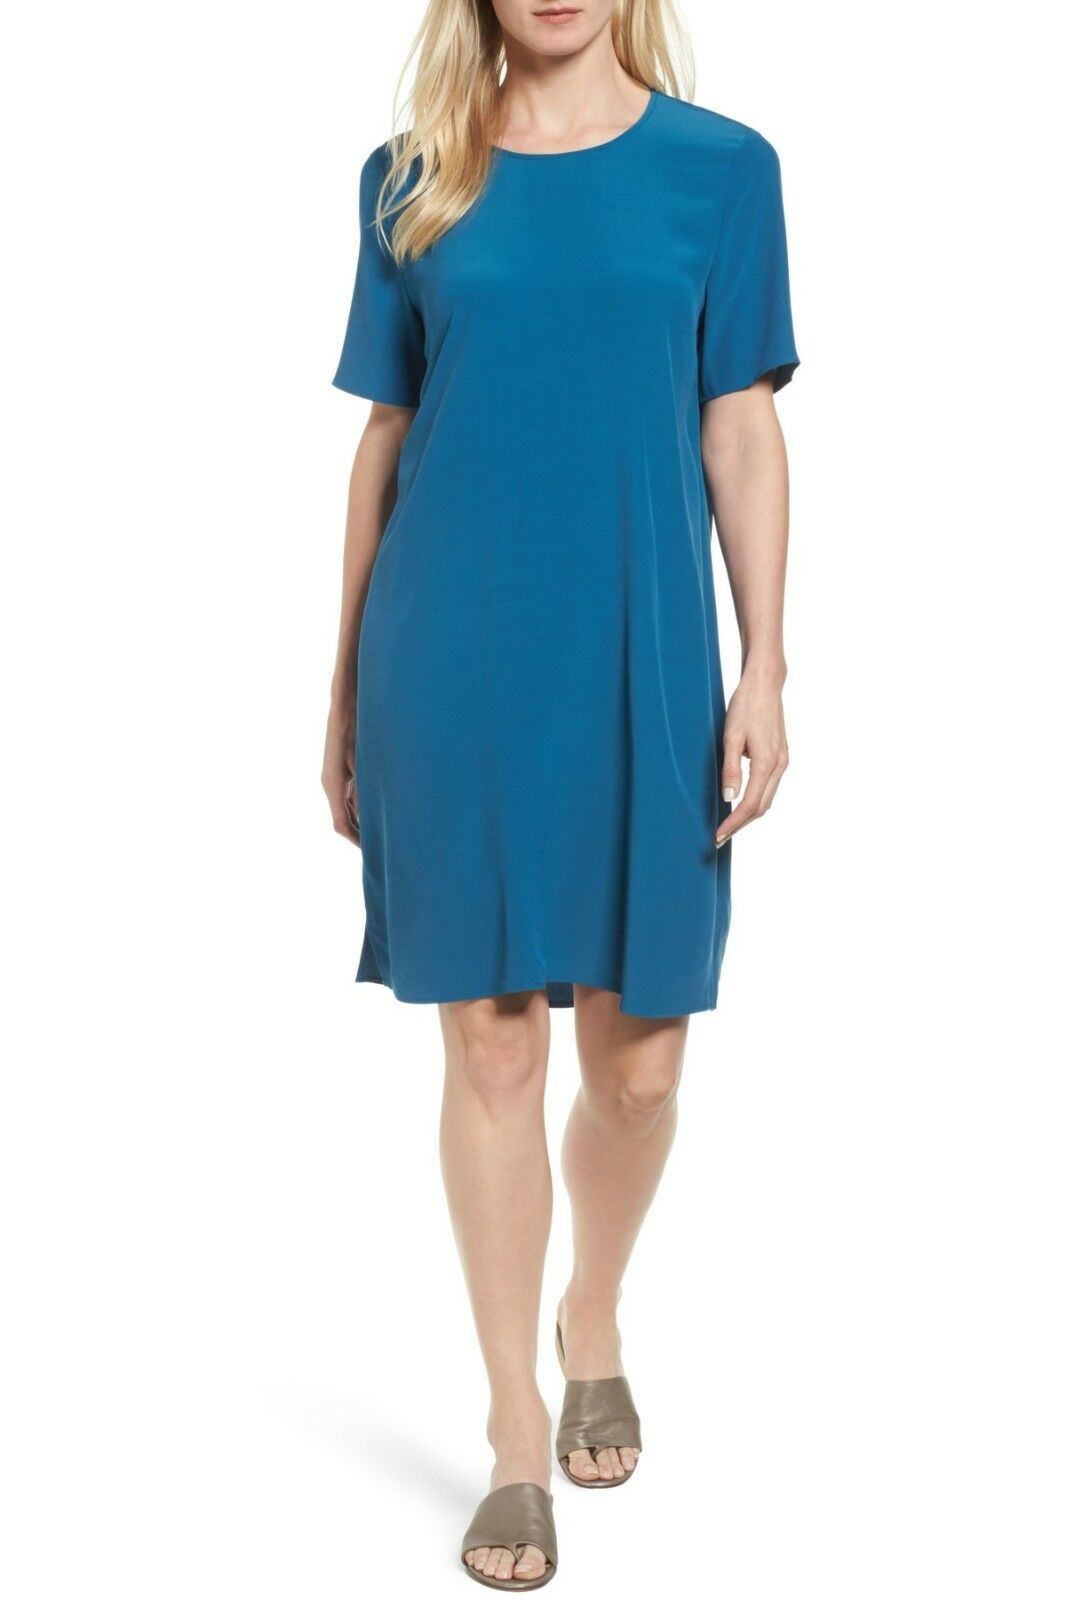 SZ M Eileen Fisher NILE Jersey Skift Dress NWT